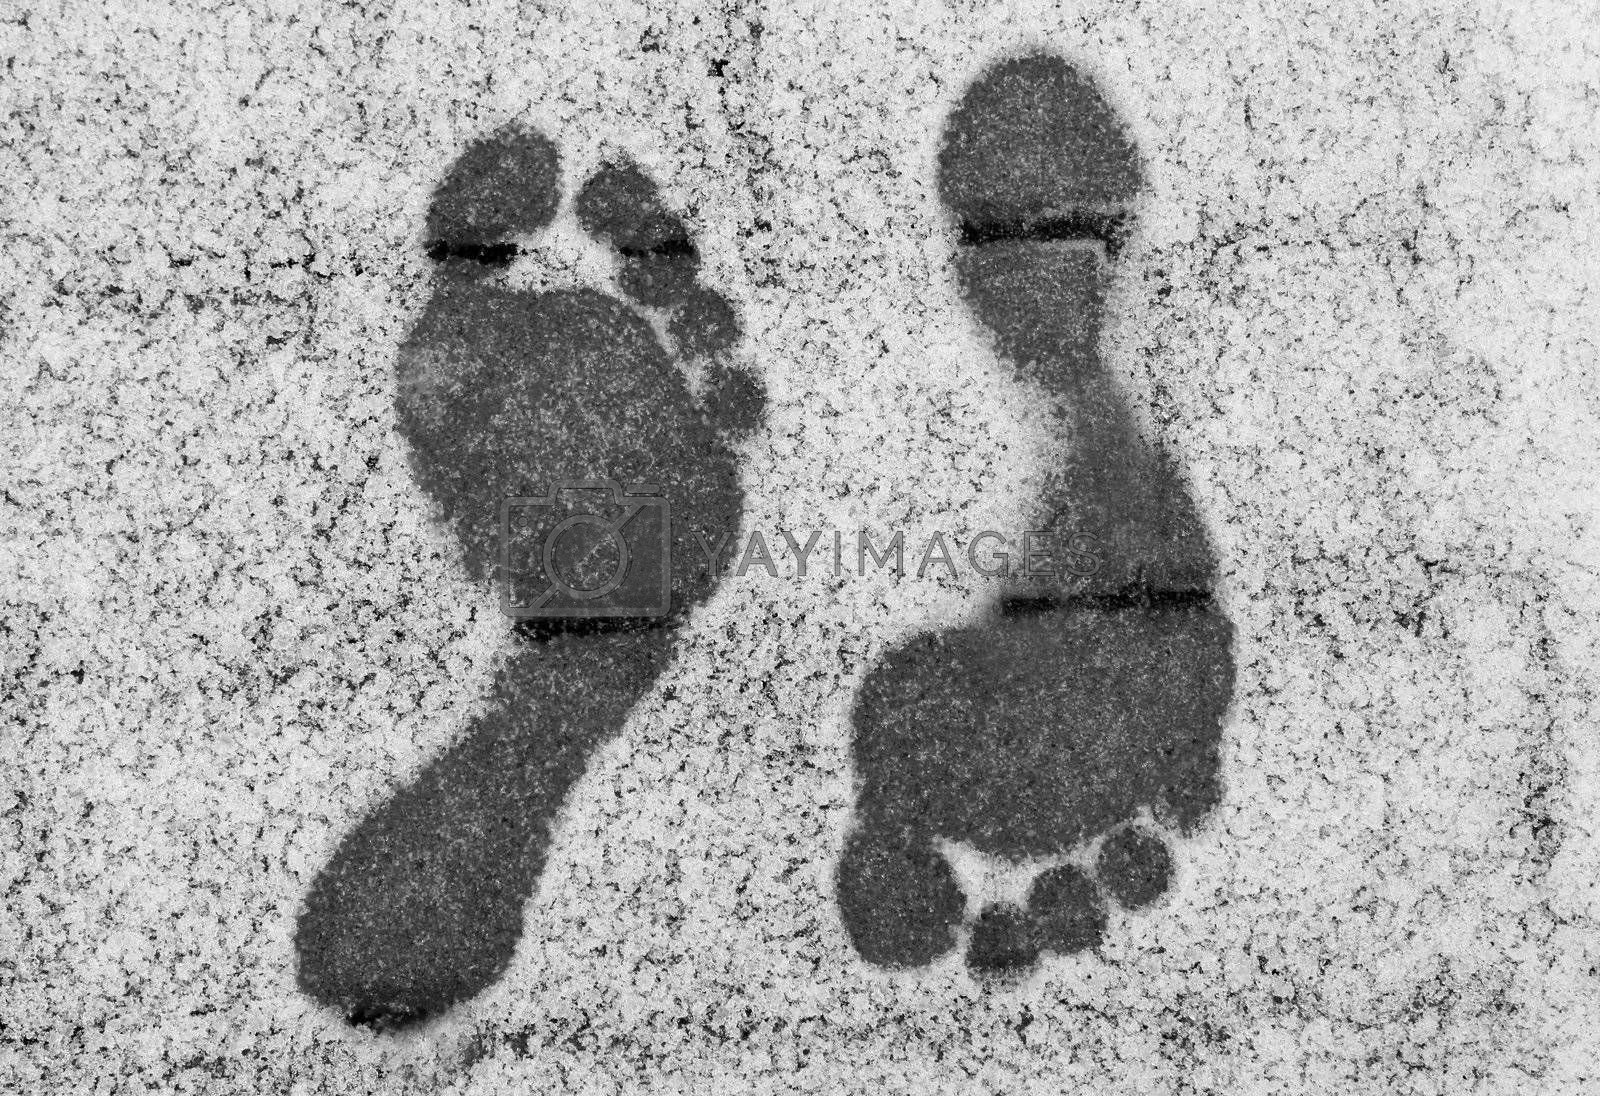 Two opposite barefoot footprints on snow at winter